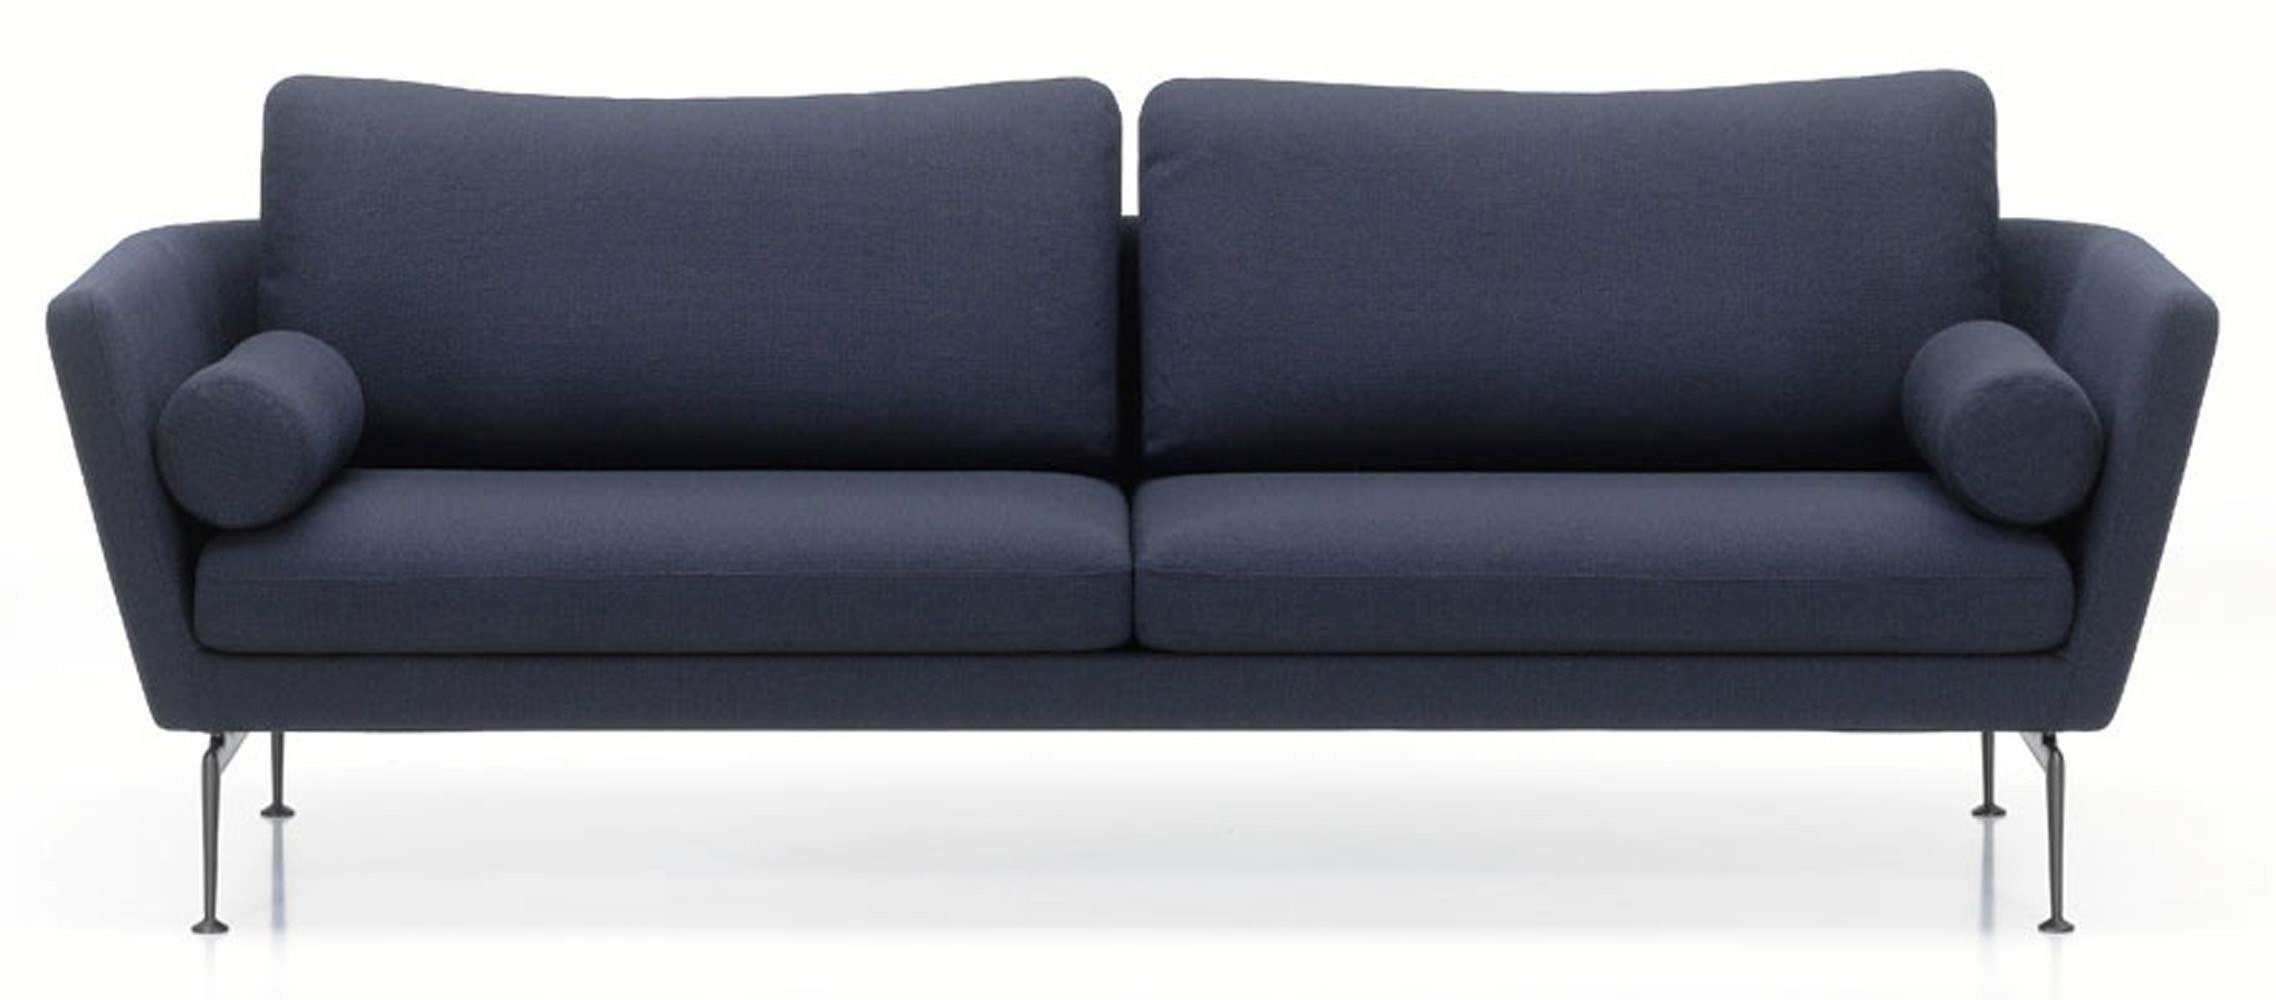 vitra suita three seater sofa gr shop canada. Black Bedroom Furniture Sets. Home Design Ideas